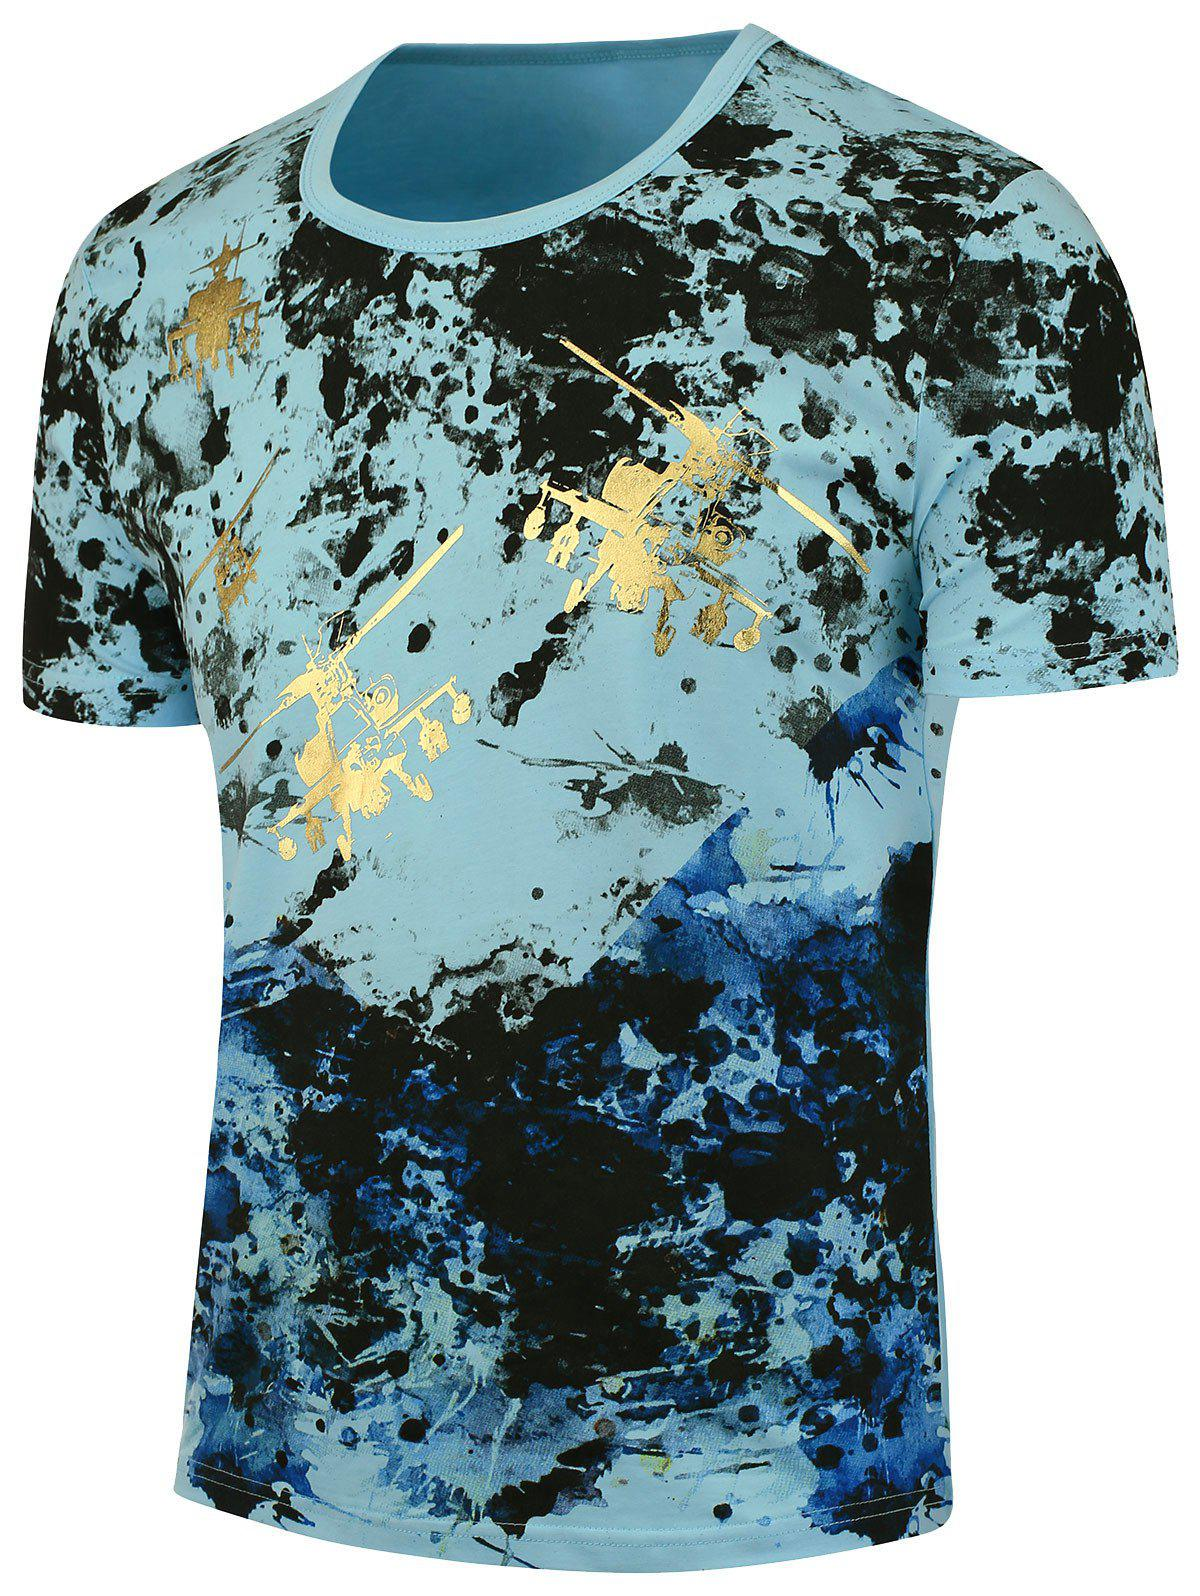 Splashed Paint Short Sleeves TeeMEN<br><br>Size: 4XL; Color: BLUE; Style: Fashion; Material: Cotton,Lycra; Sleeve Length: Short; Collar: Crew Neck; Pattern Type: Print; Weight: 0.2040kg; Package Contents: 1 x T-shirt;